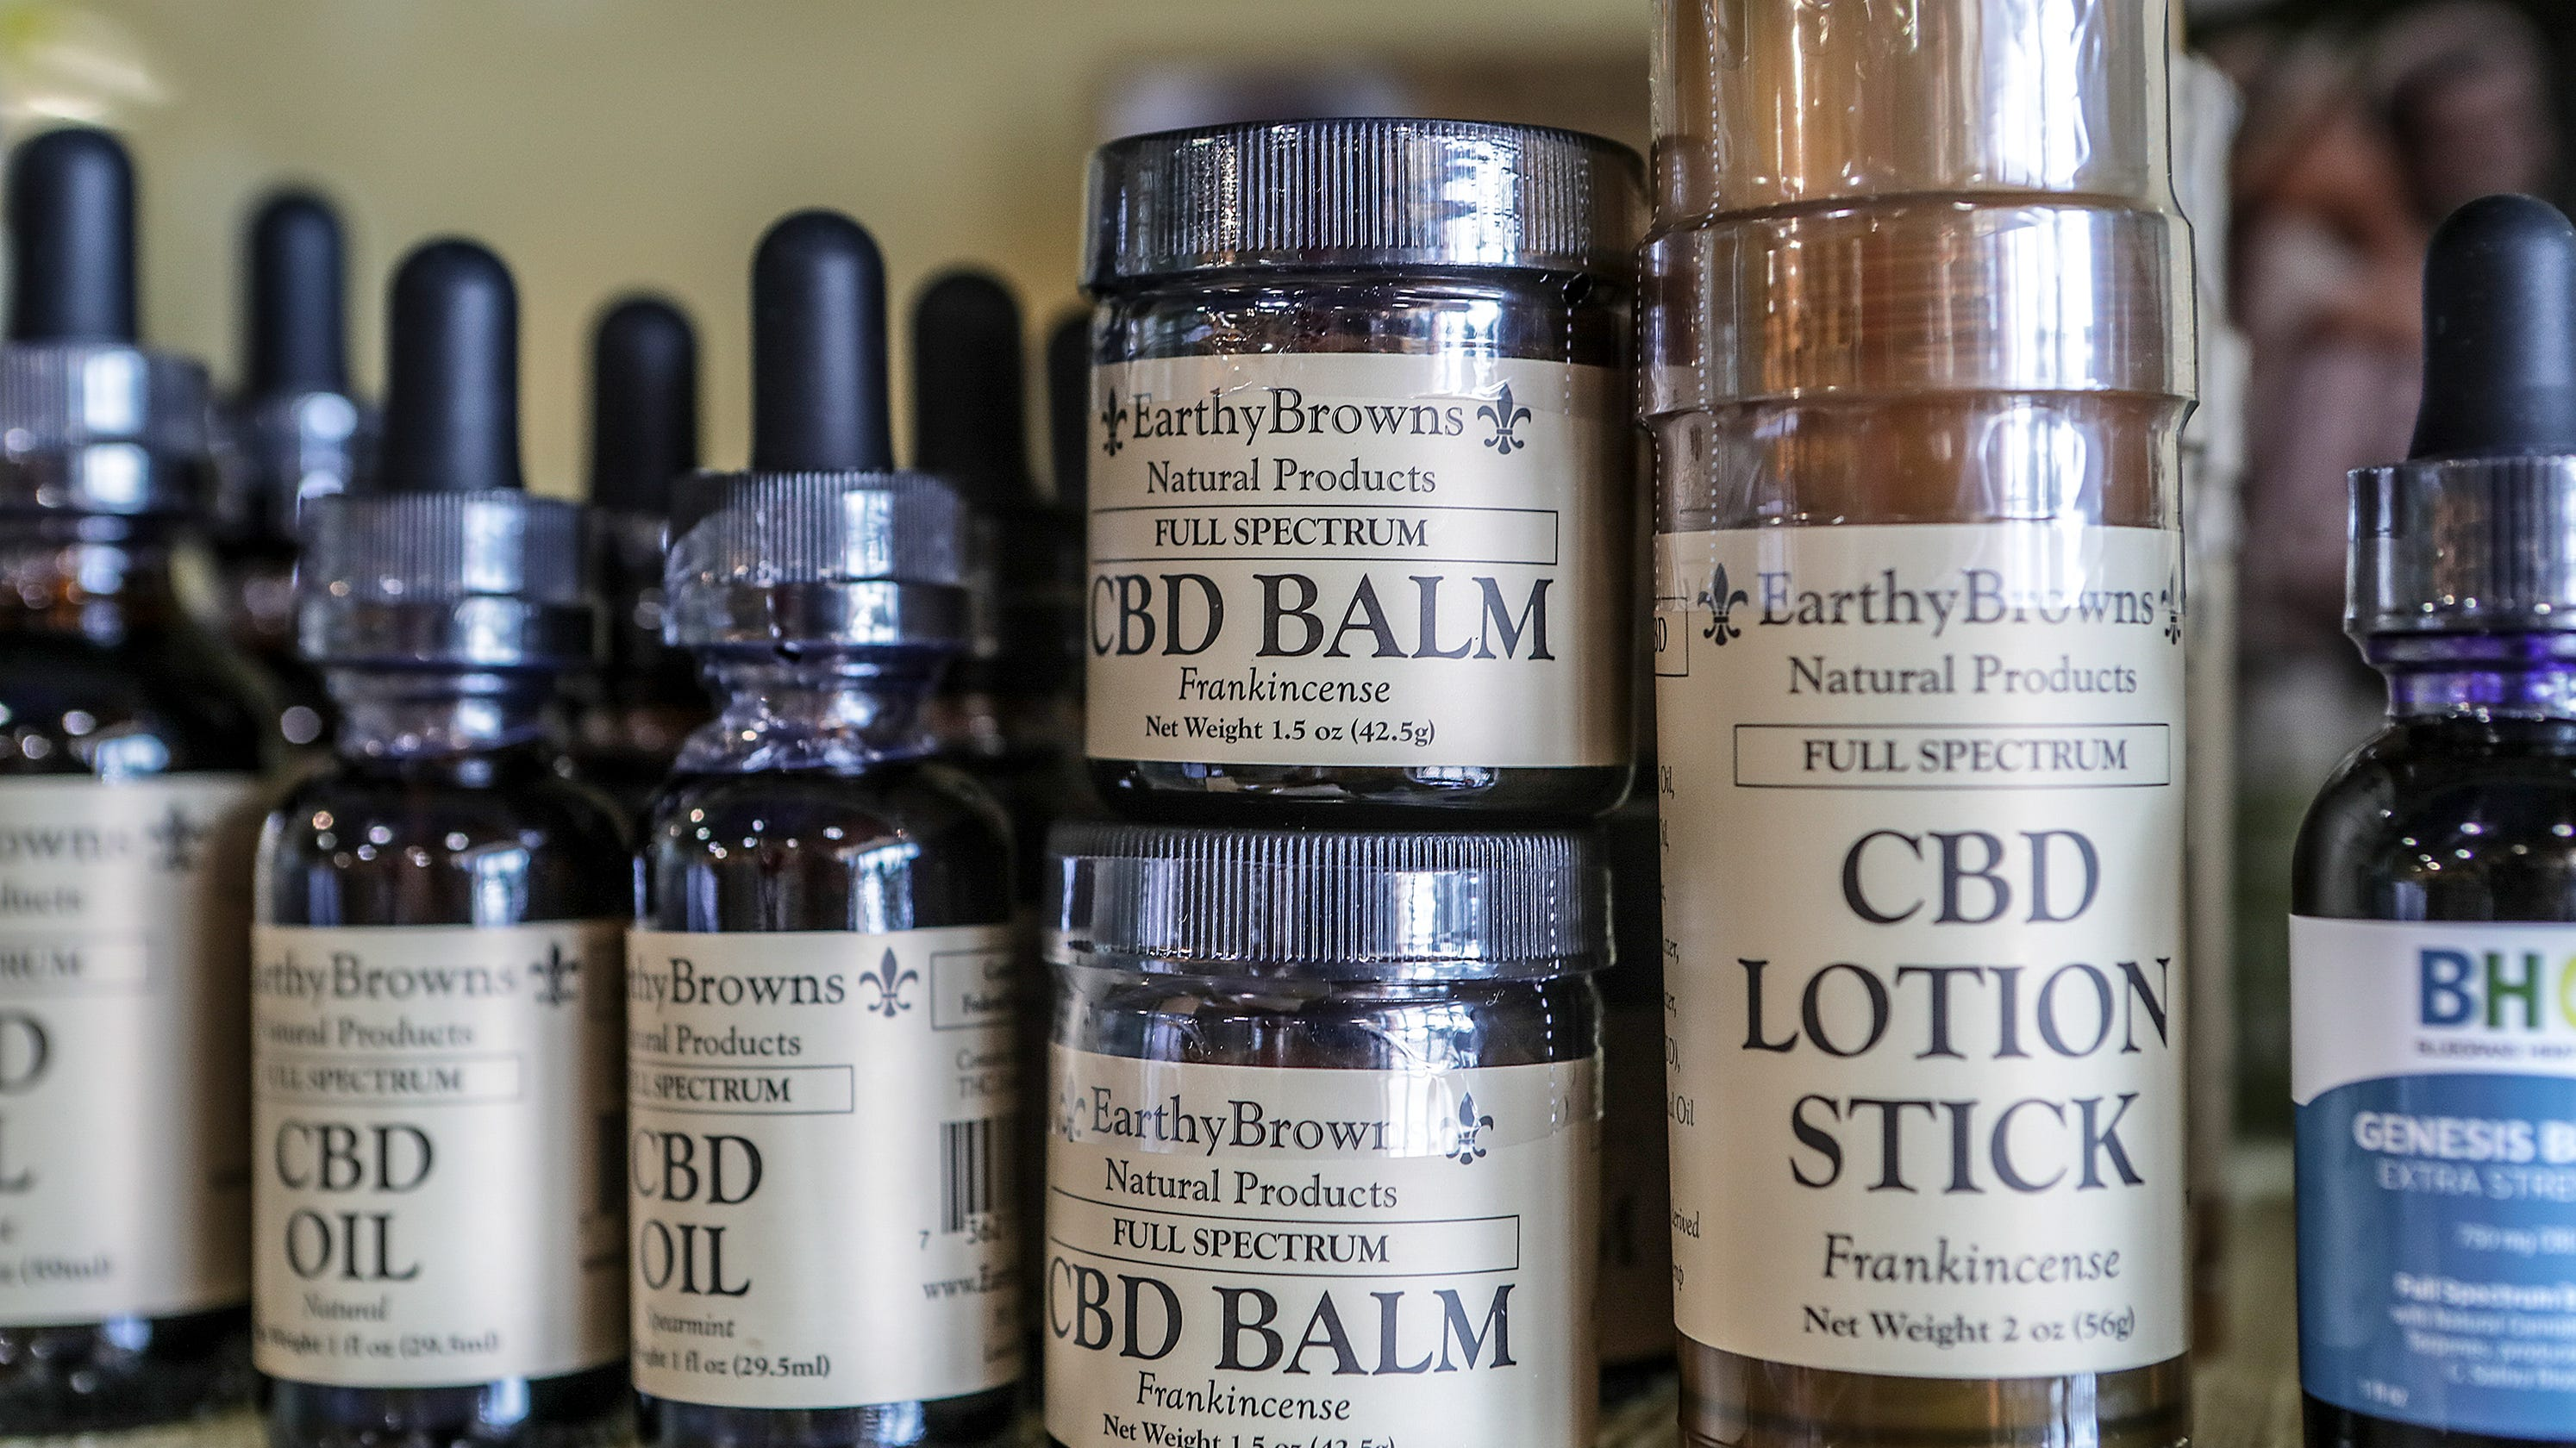 CBD oil legal in Kentucky: What to know about hemp, cannabidoil